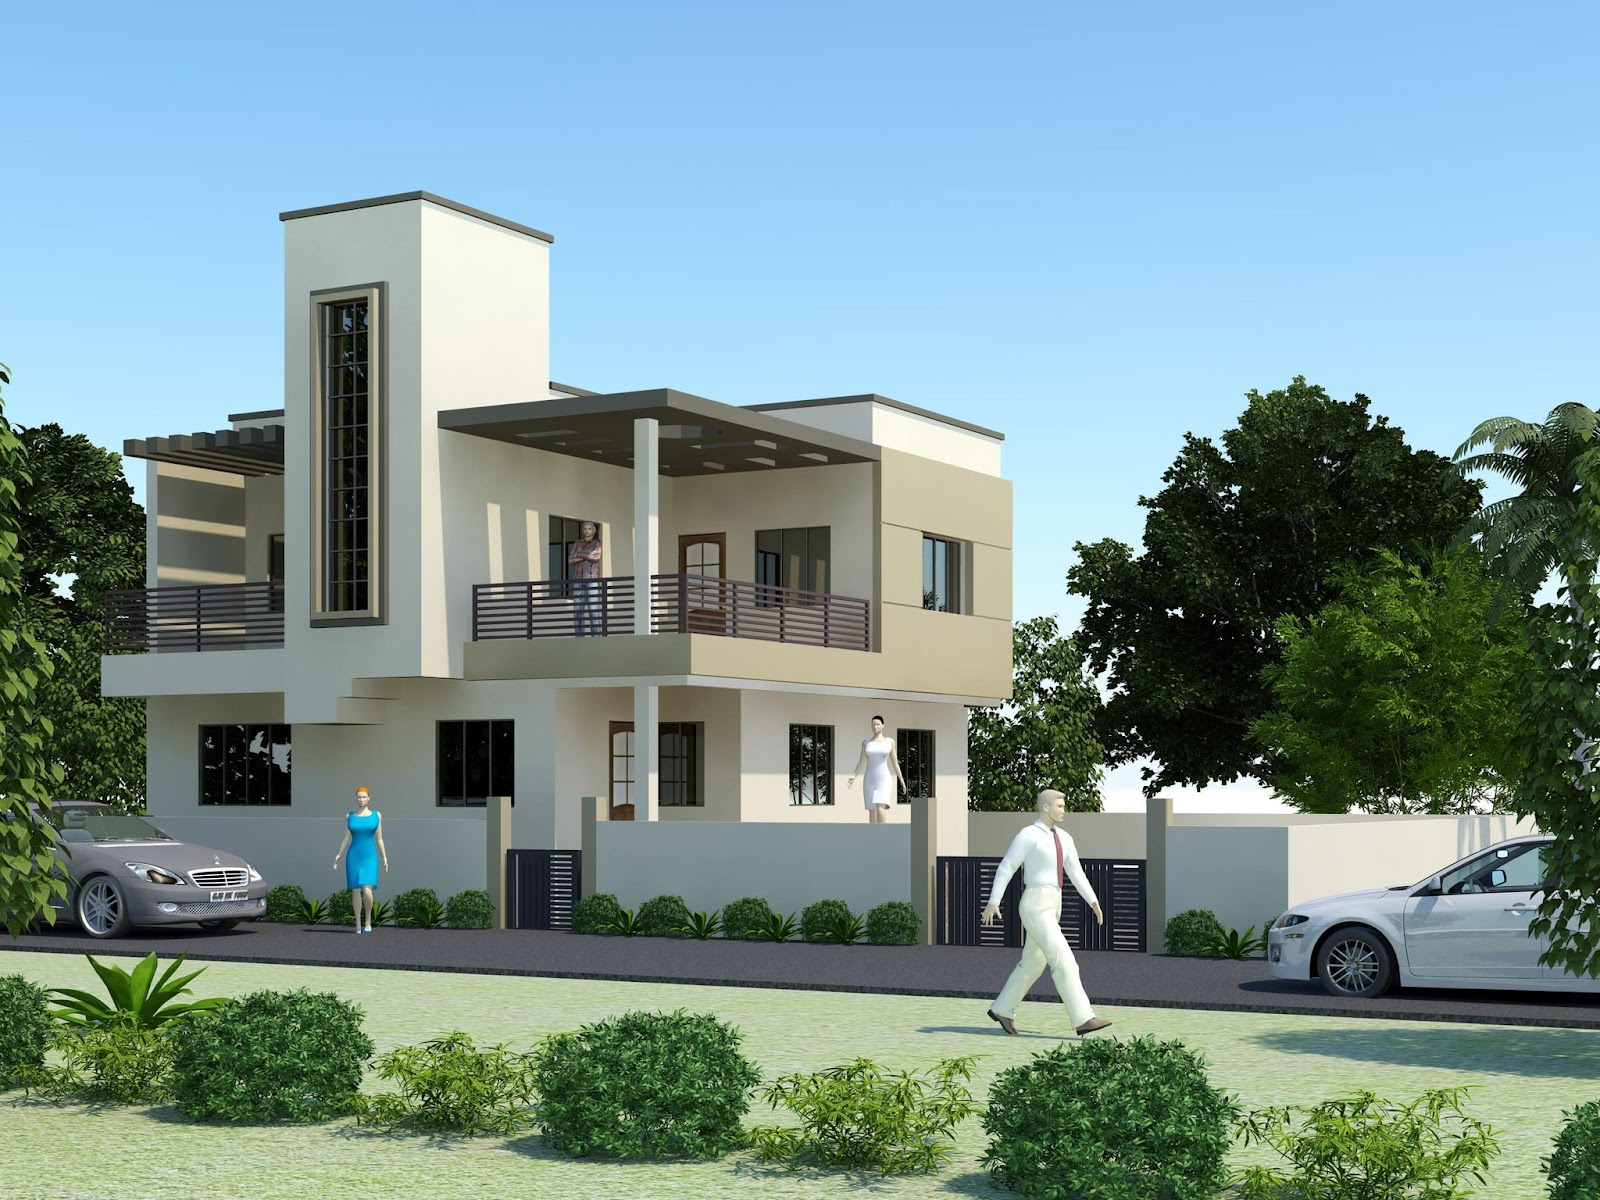 new home designs latest modern homes exterior designs On front house design ideas